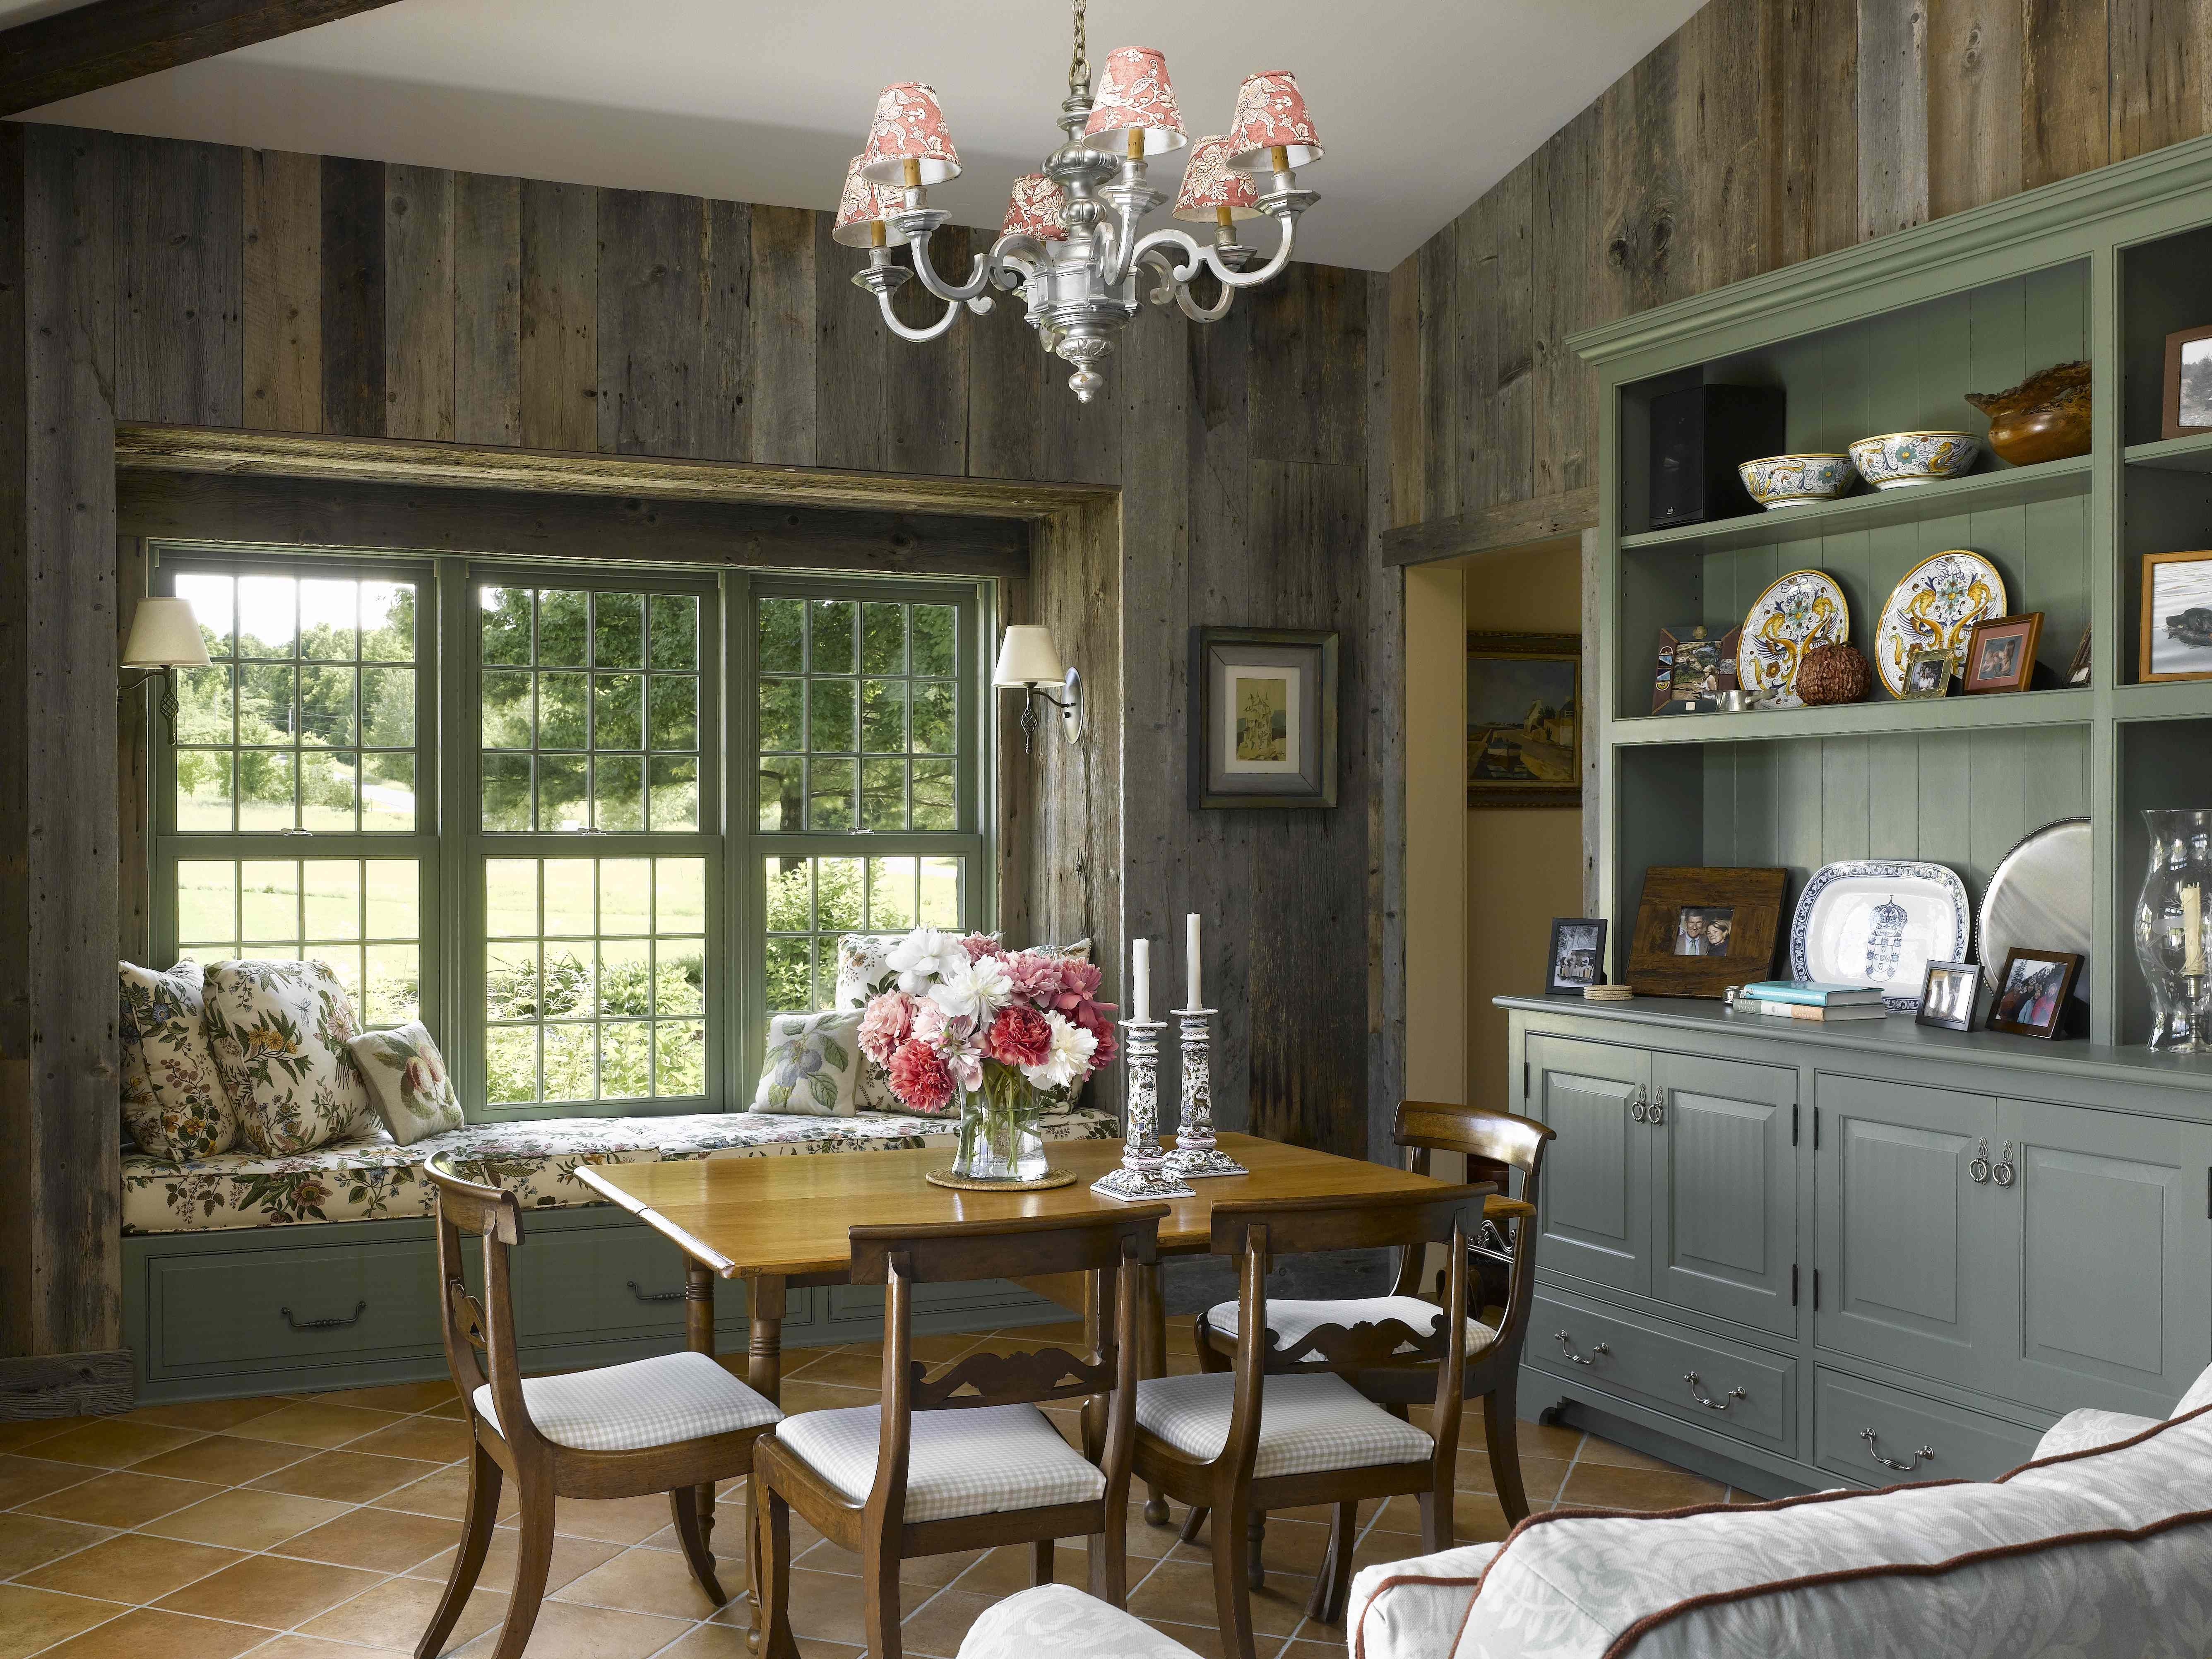 Master bedroom addition  Breakfast room addition to an historic home in Vermont using